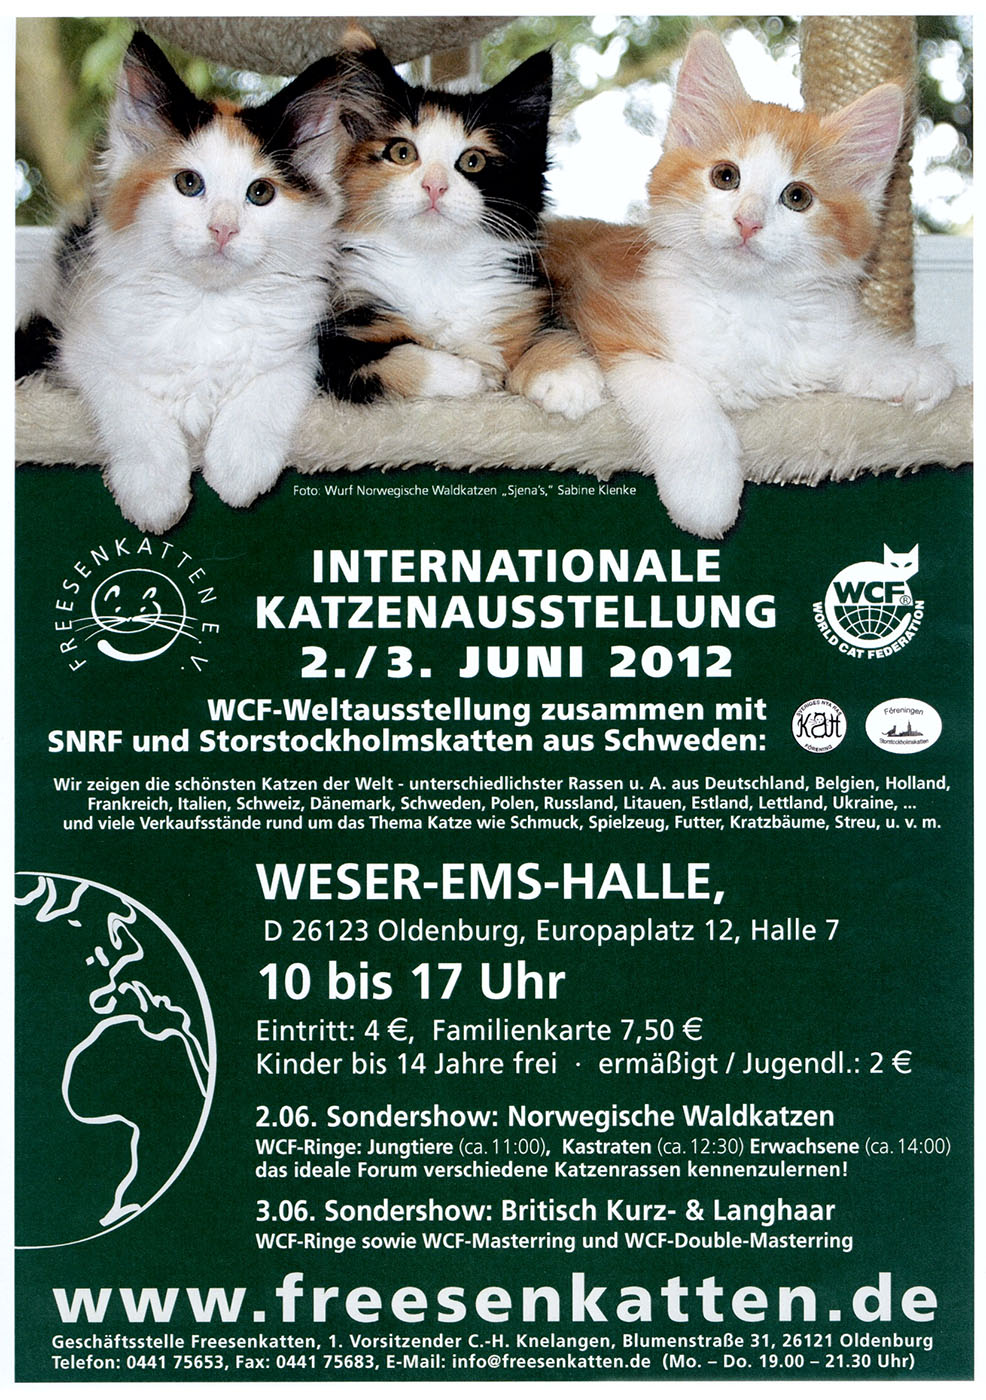 Internationale Katzenausstellung der Fressenkatten in Oldenburg